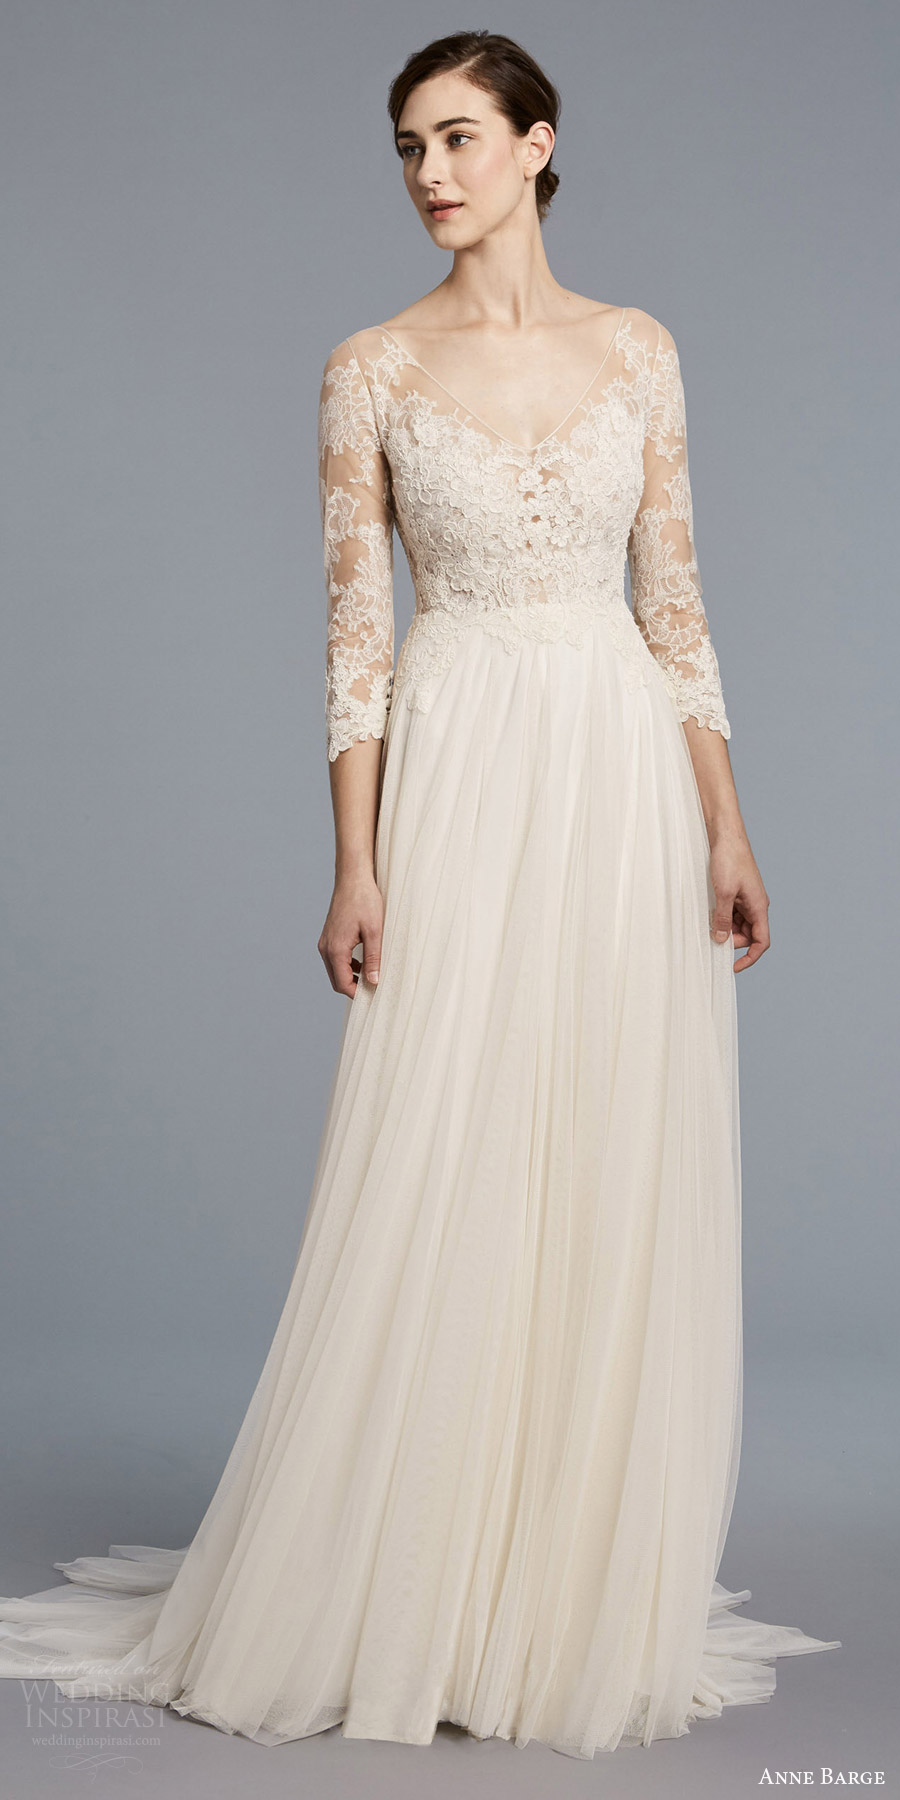 Anne Barge Spring 2018 Wedding Dresses